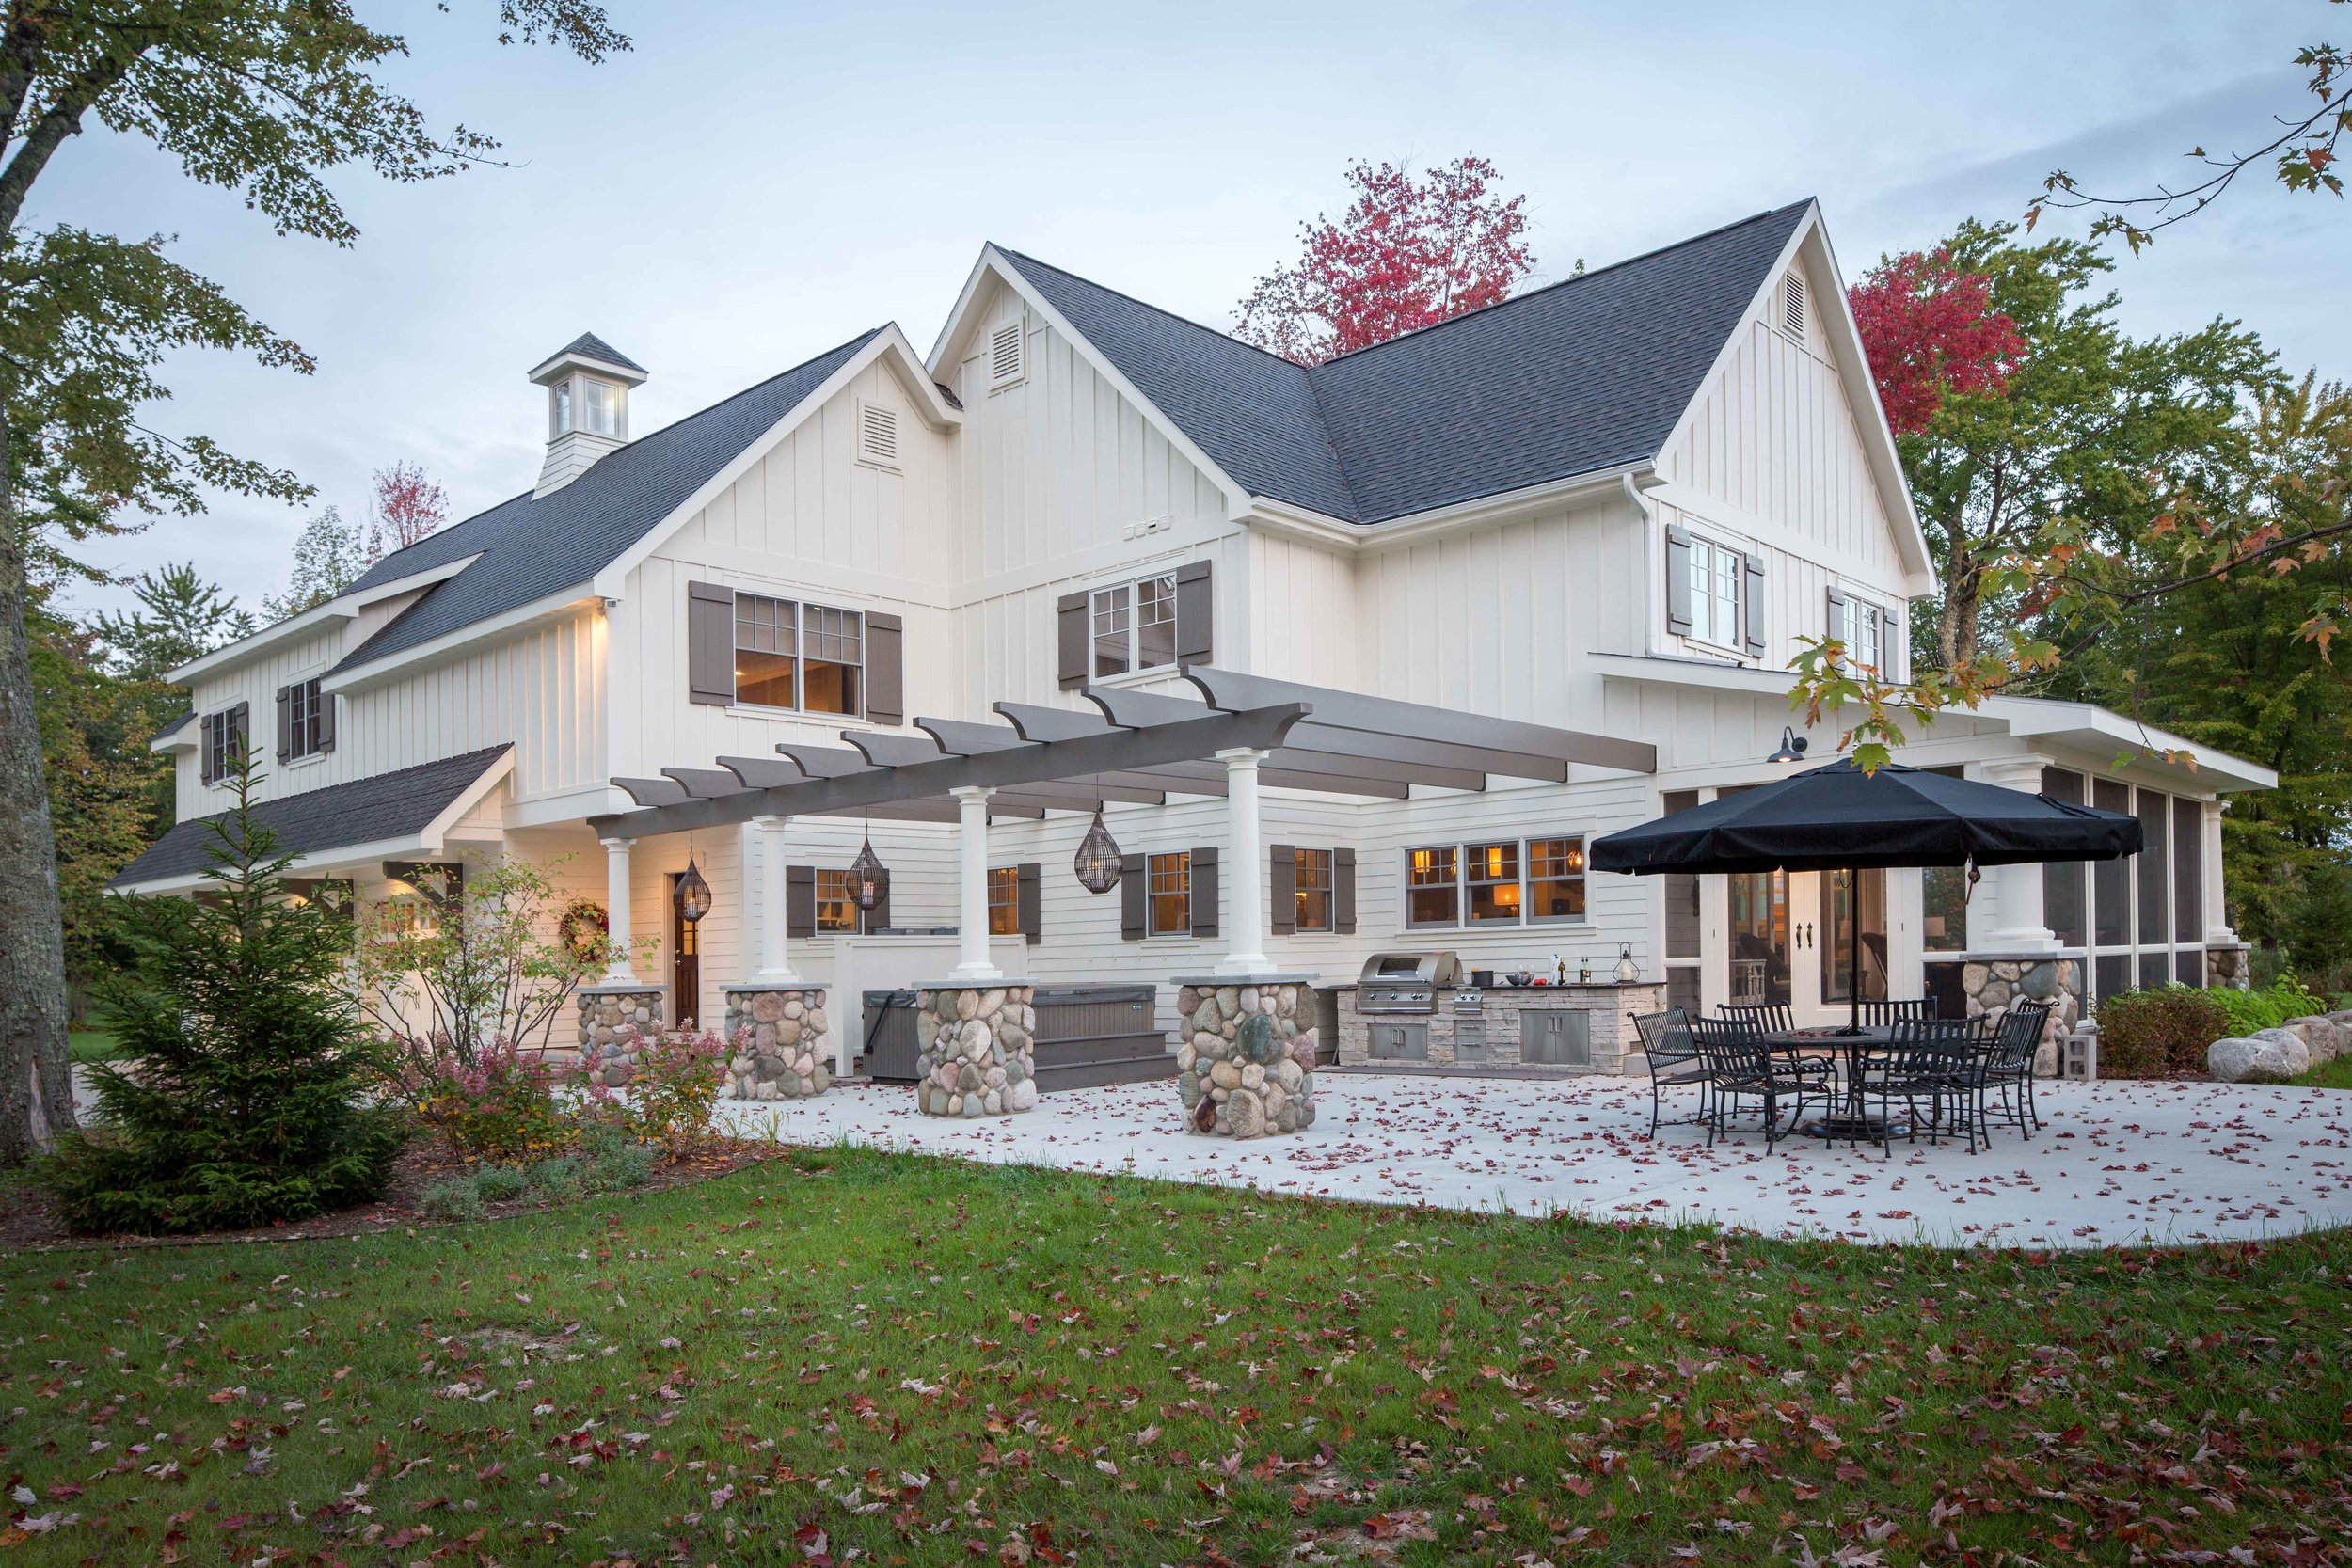 Northern Michigan custom home and remodeling portfolio by builders and contractors, Birchwood Construction.